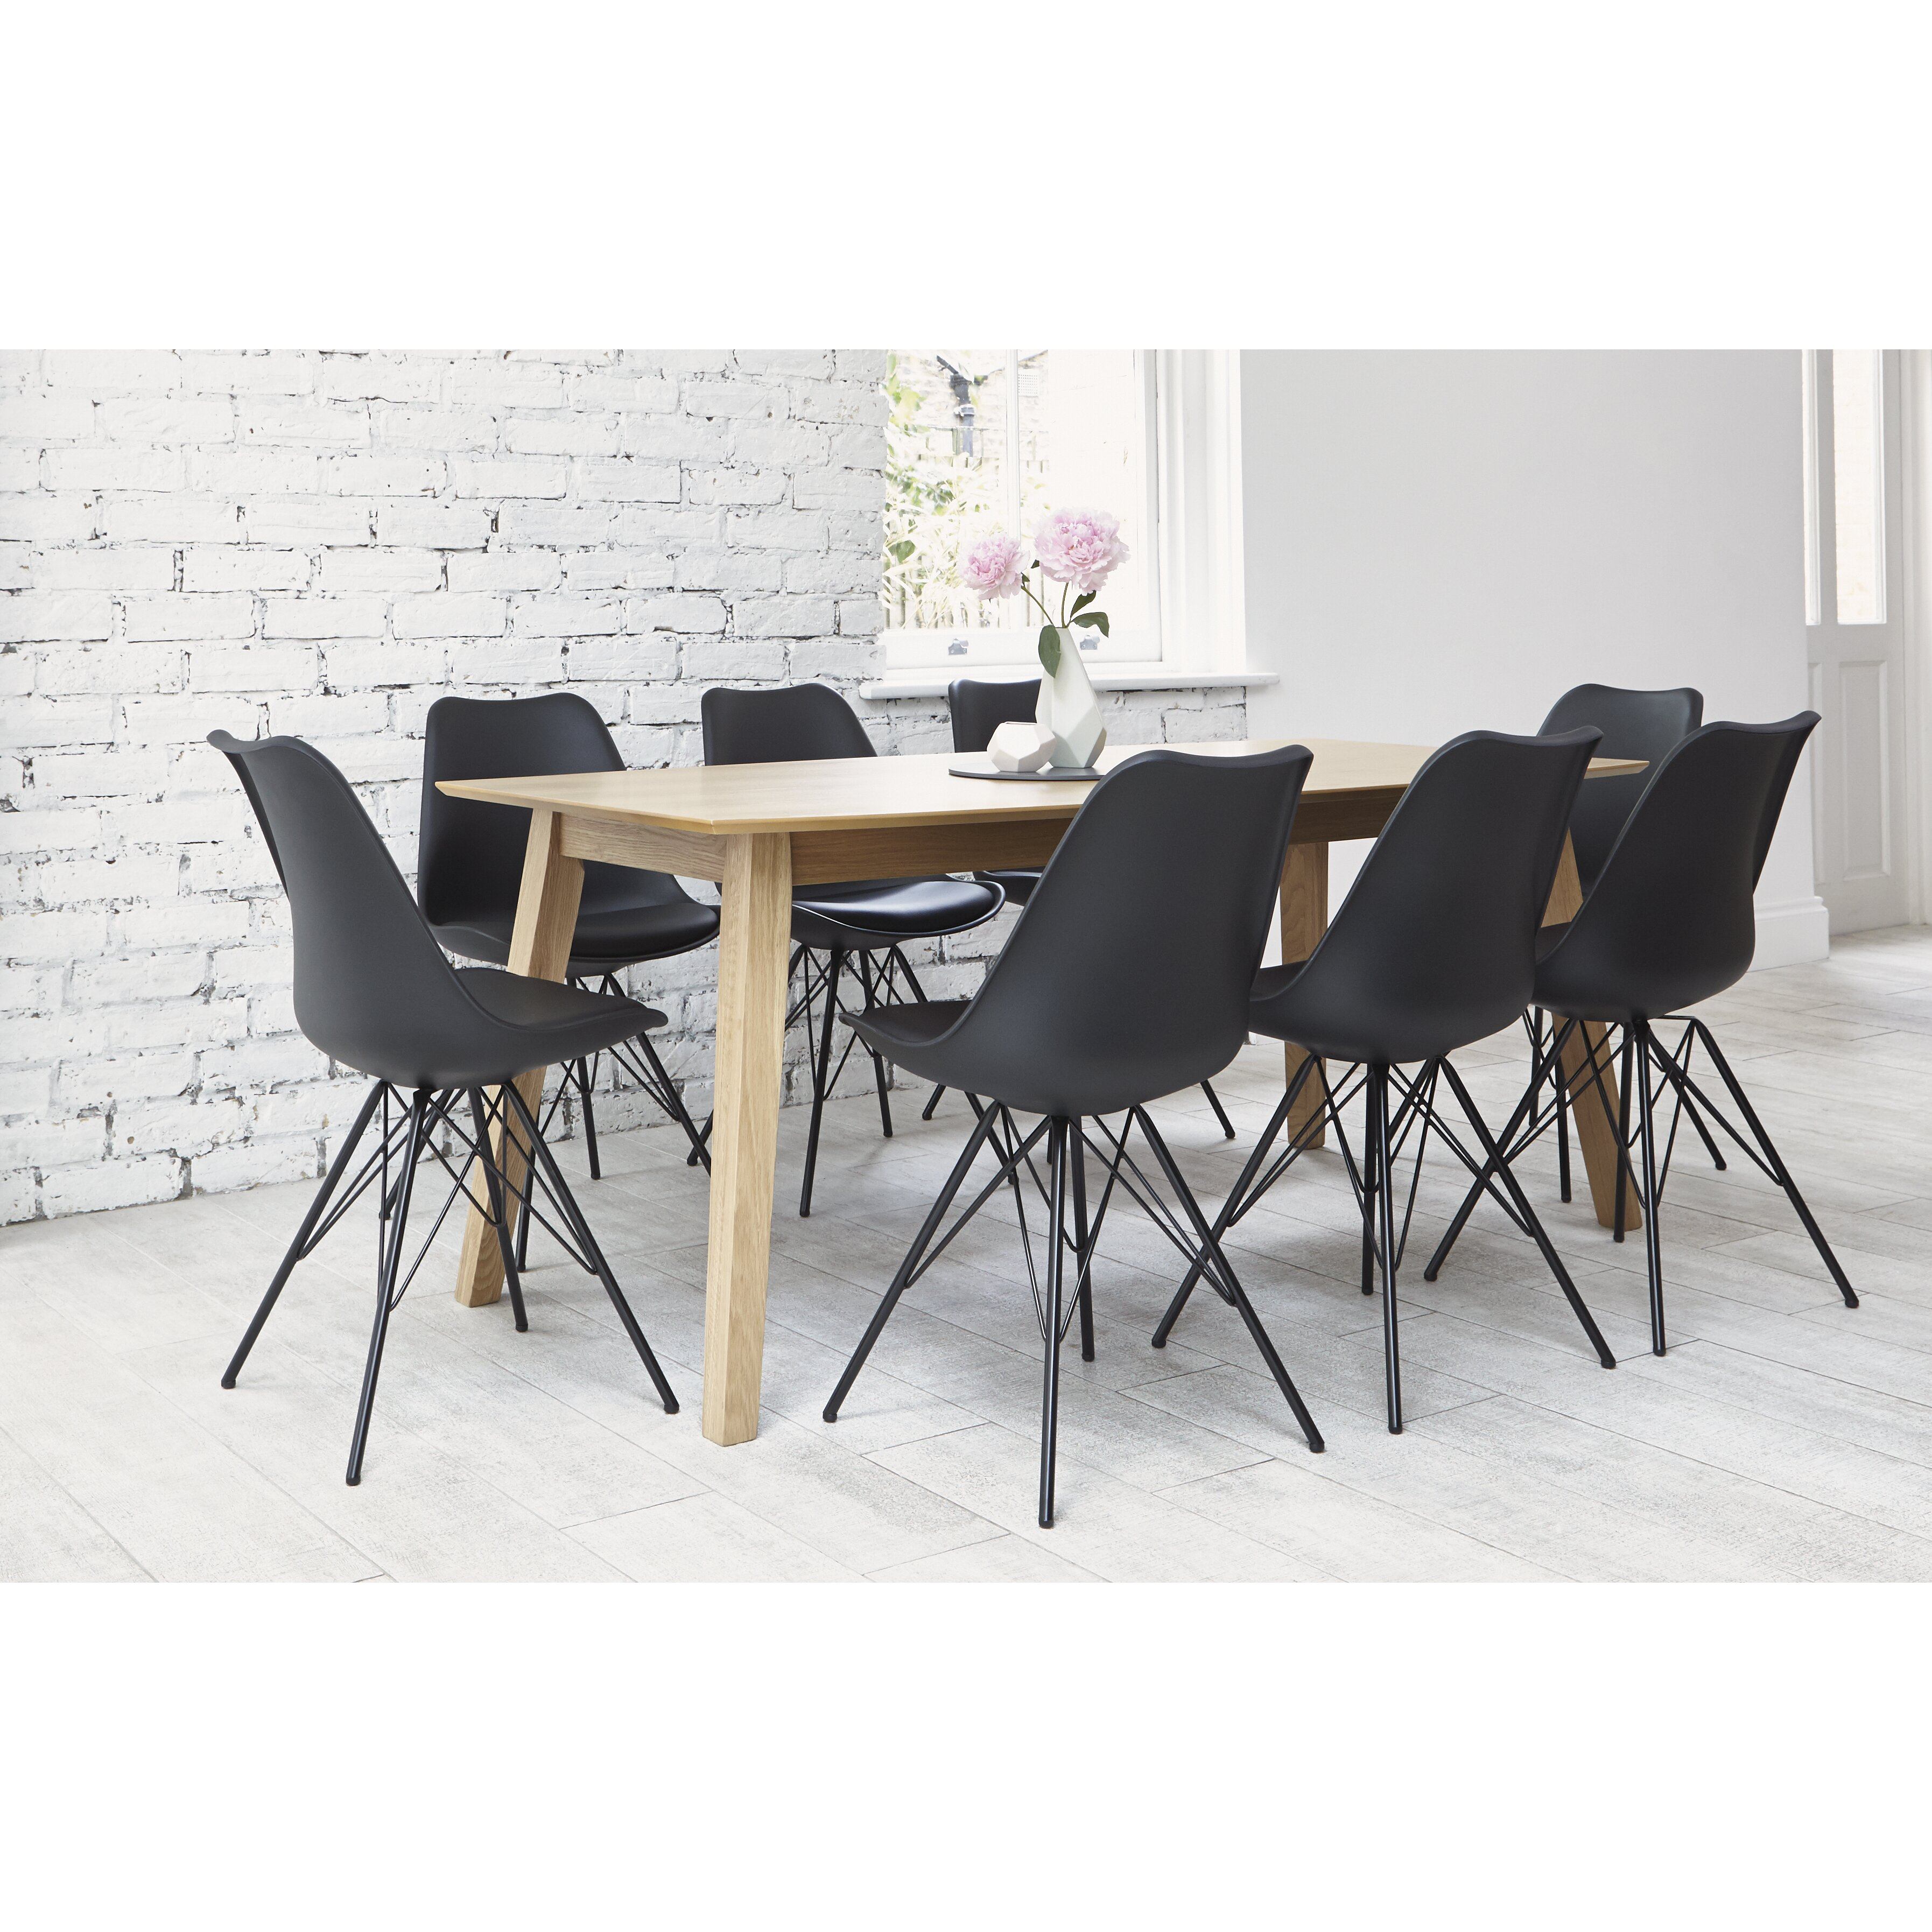 Outandoutoriginal indiana dining table and 8 chairs for Wayfair furniture dining tables